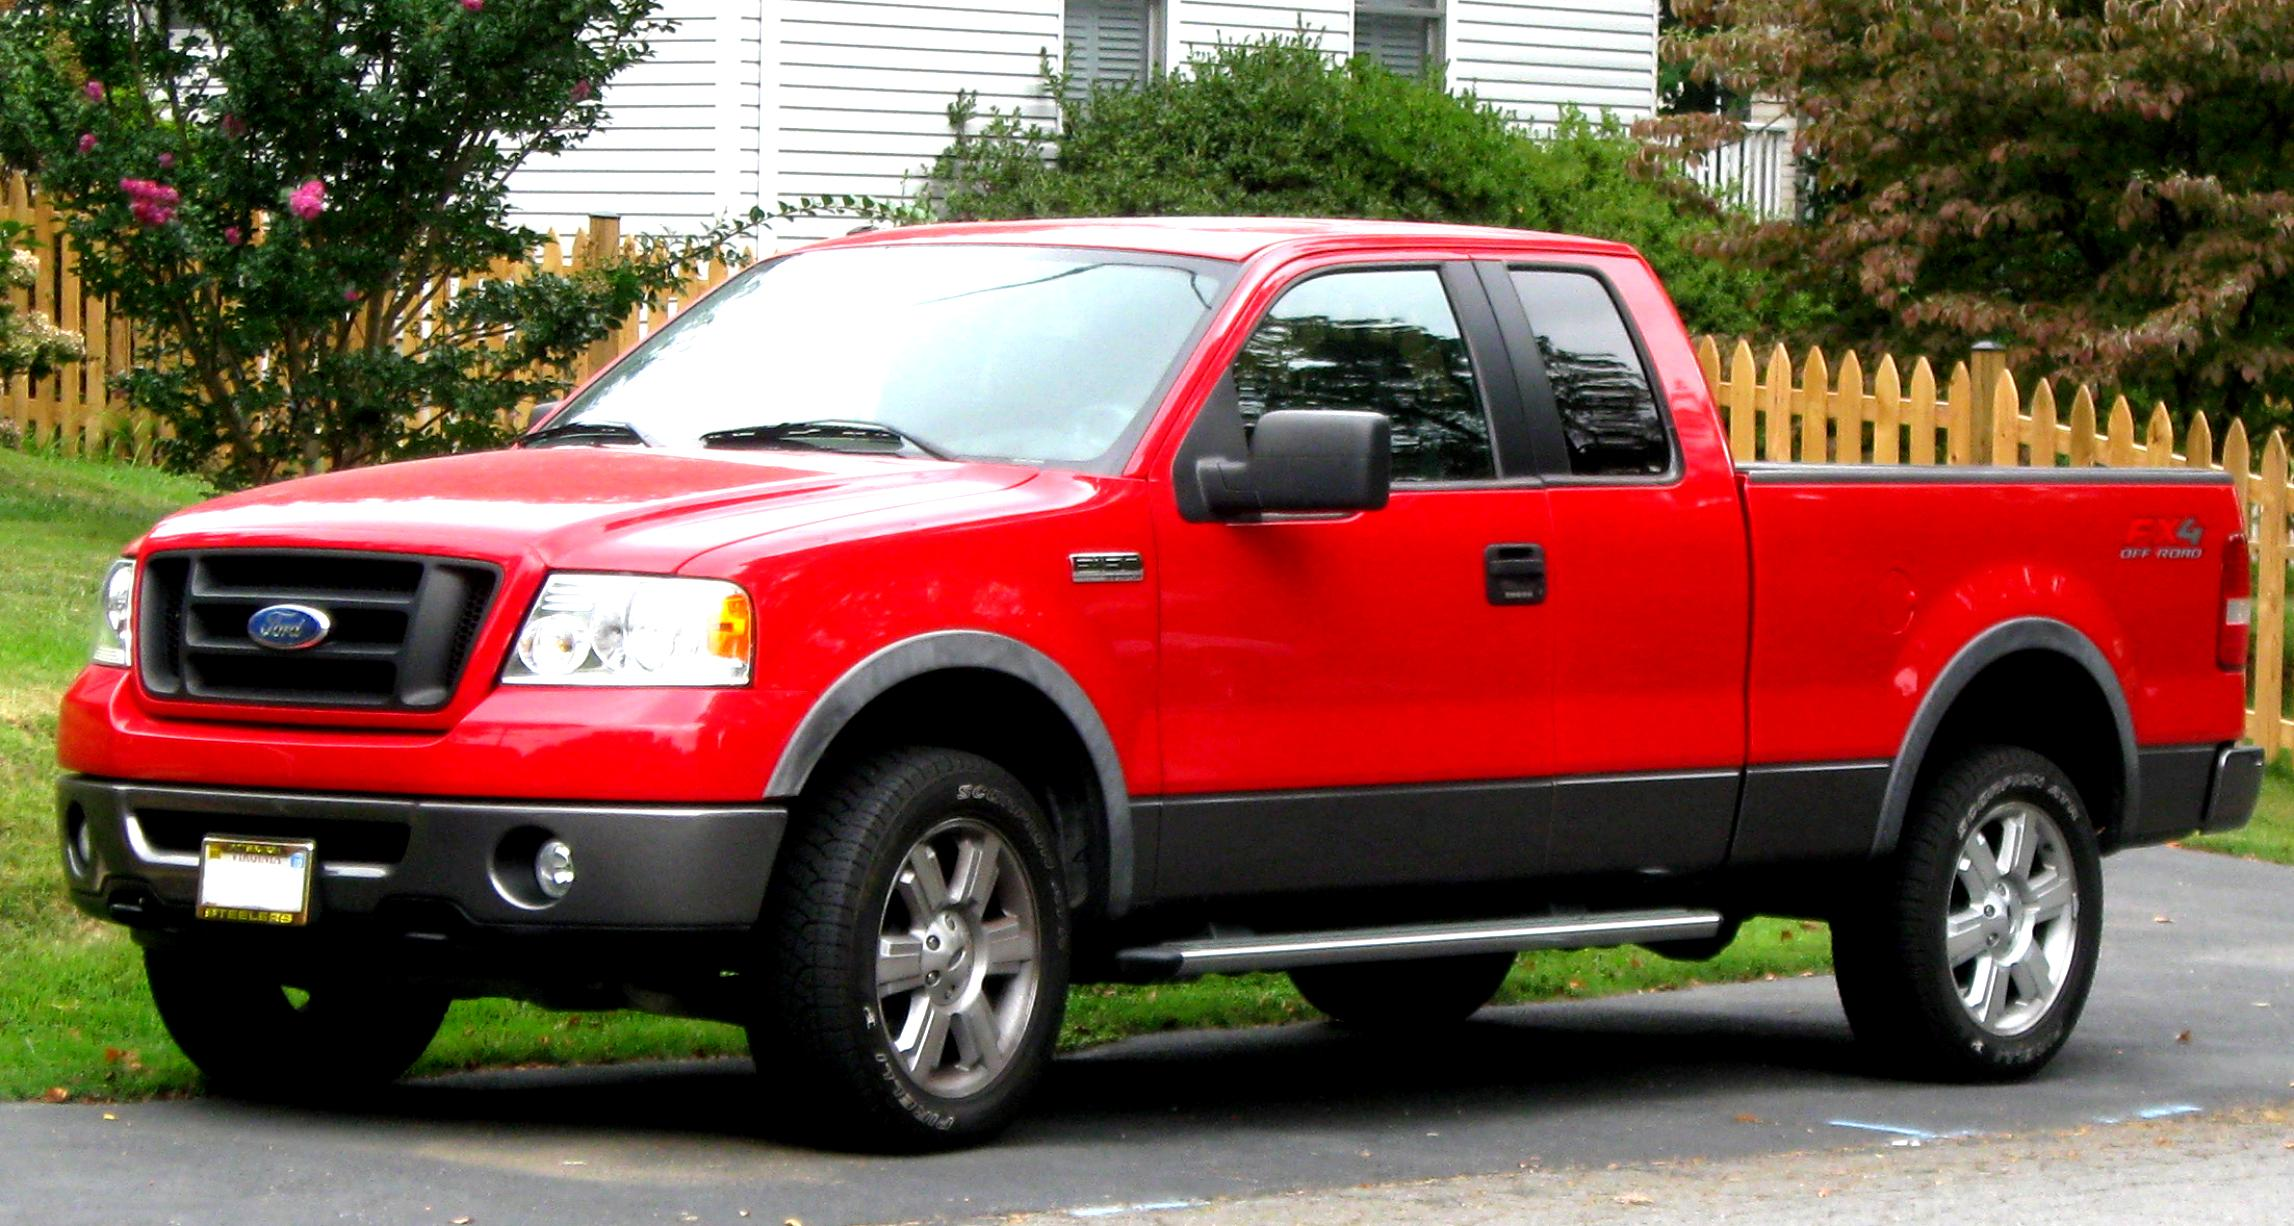 Ford F-150 Super Cab 2004 #9